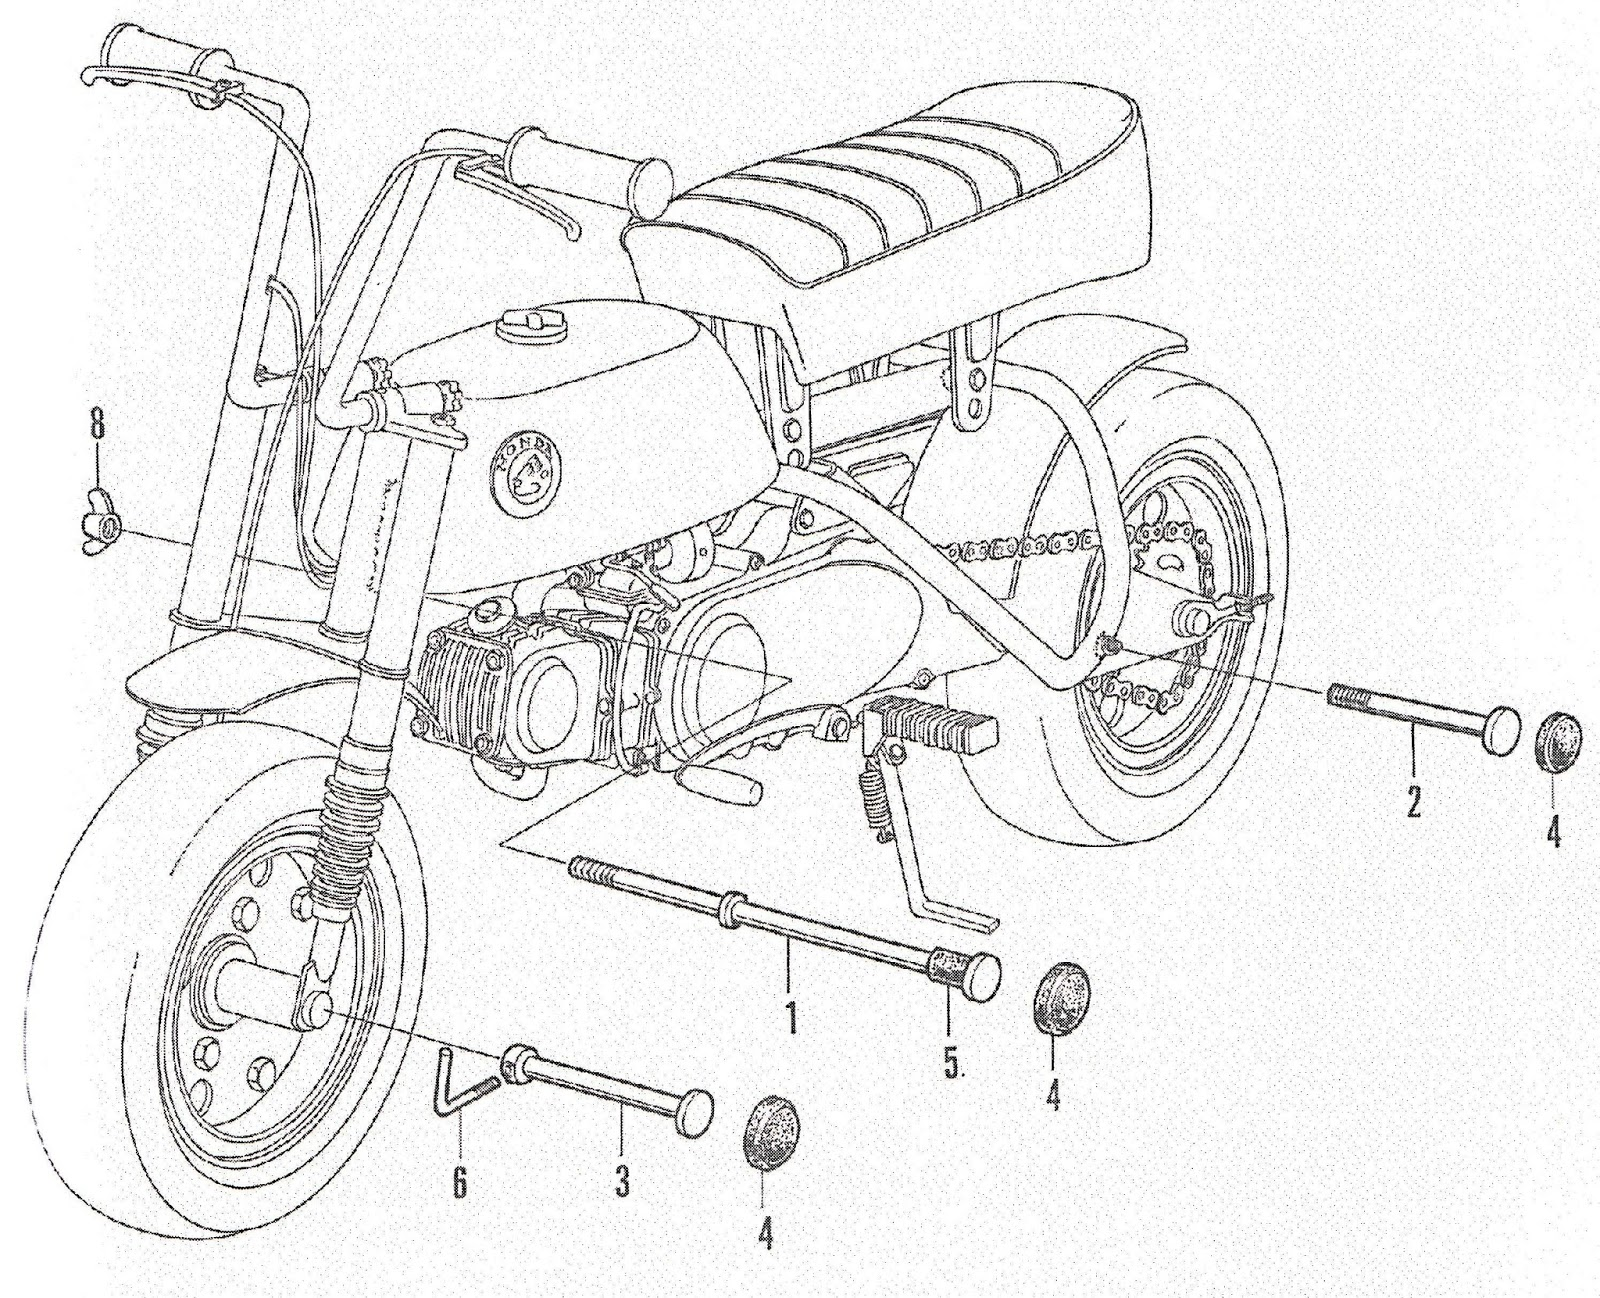 Honda Ct90 K1 Motor Diagram